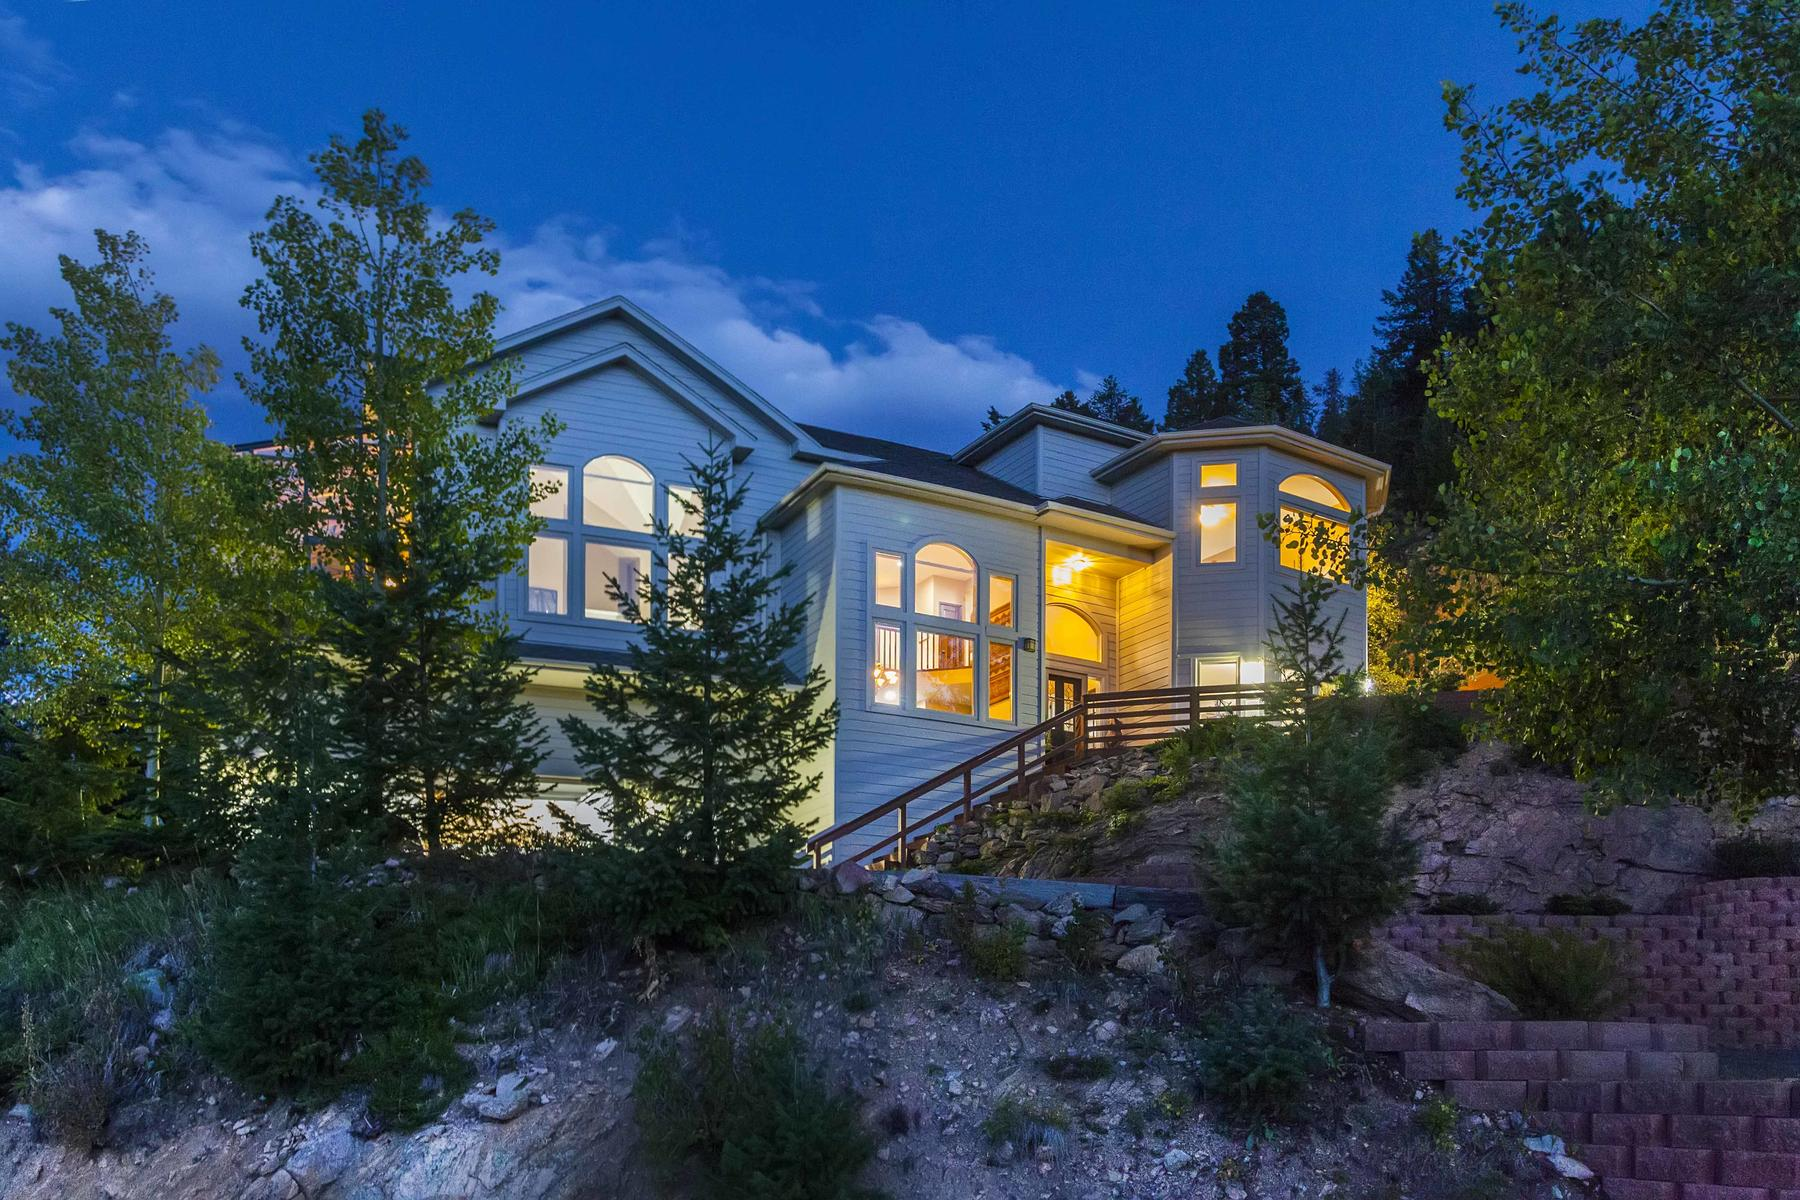 Single Family Homes for Sale at 6798 Berry Bush Lane Evergreen, Colorado 80439 United States